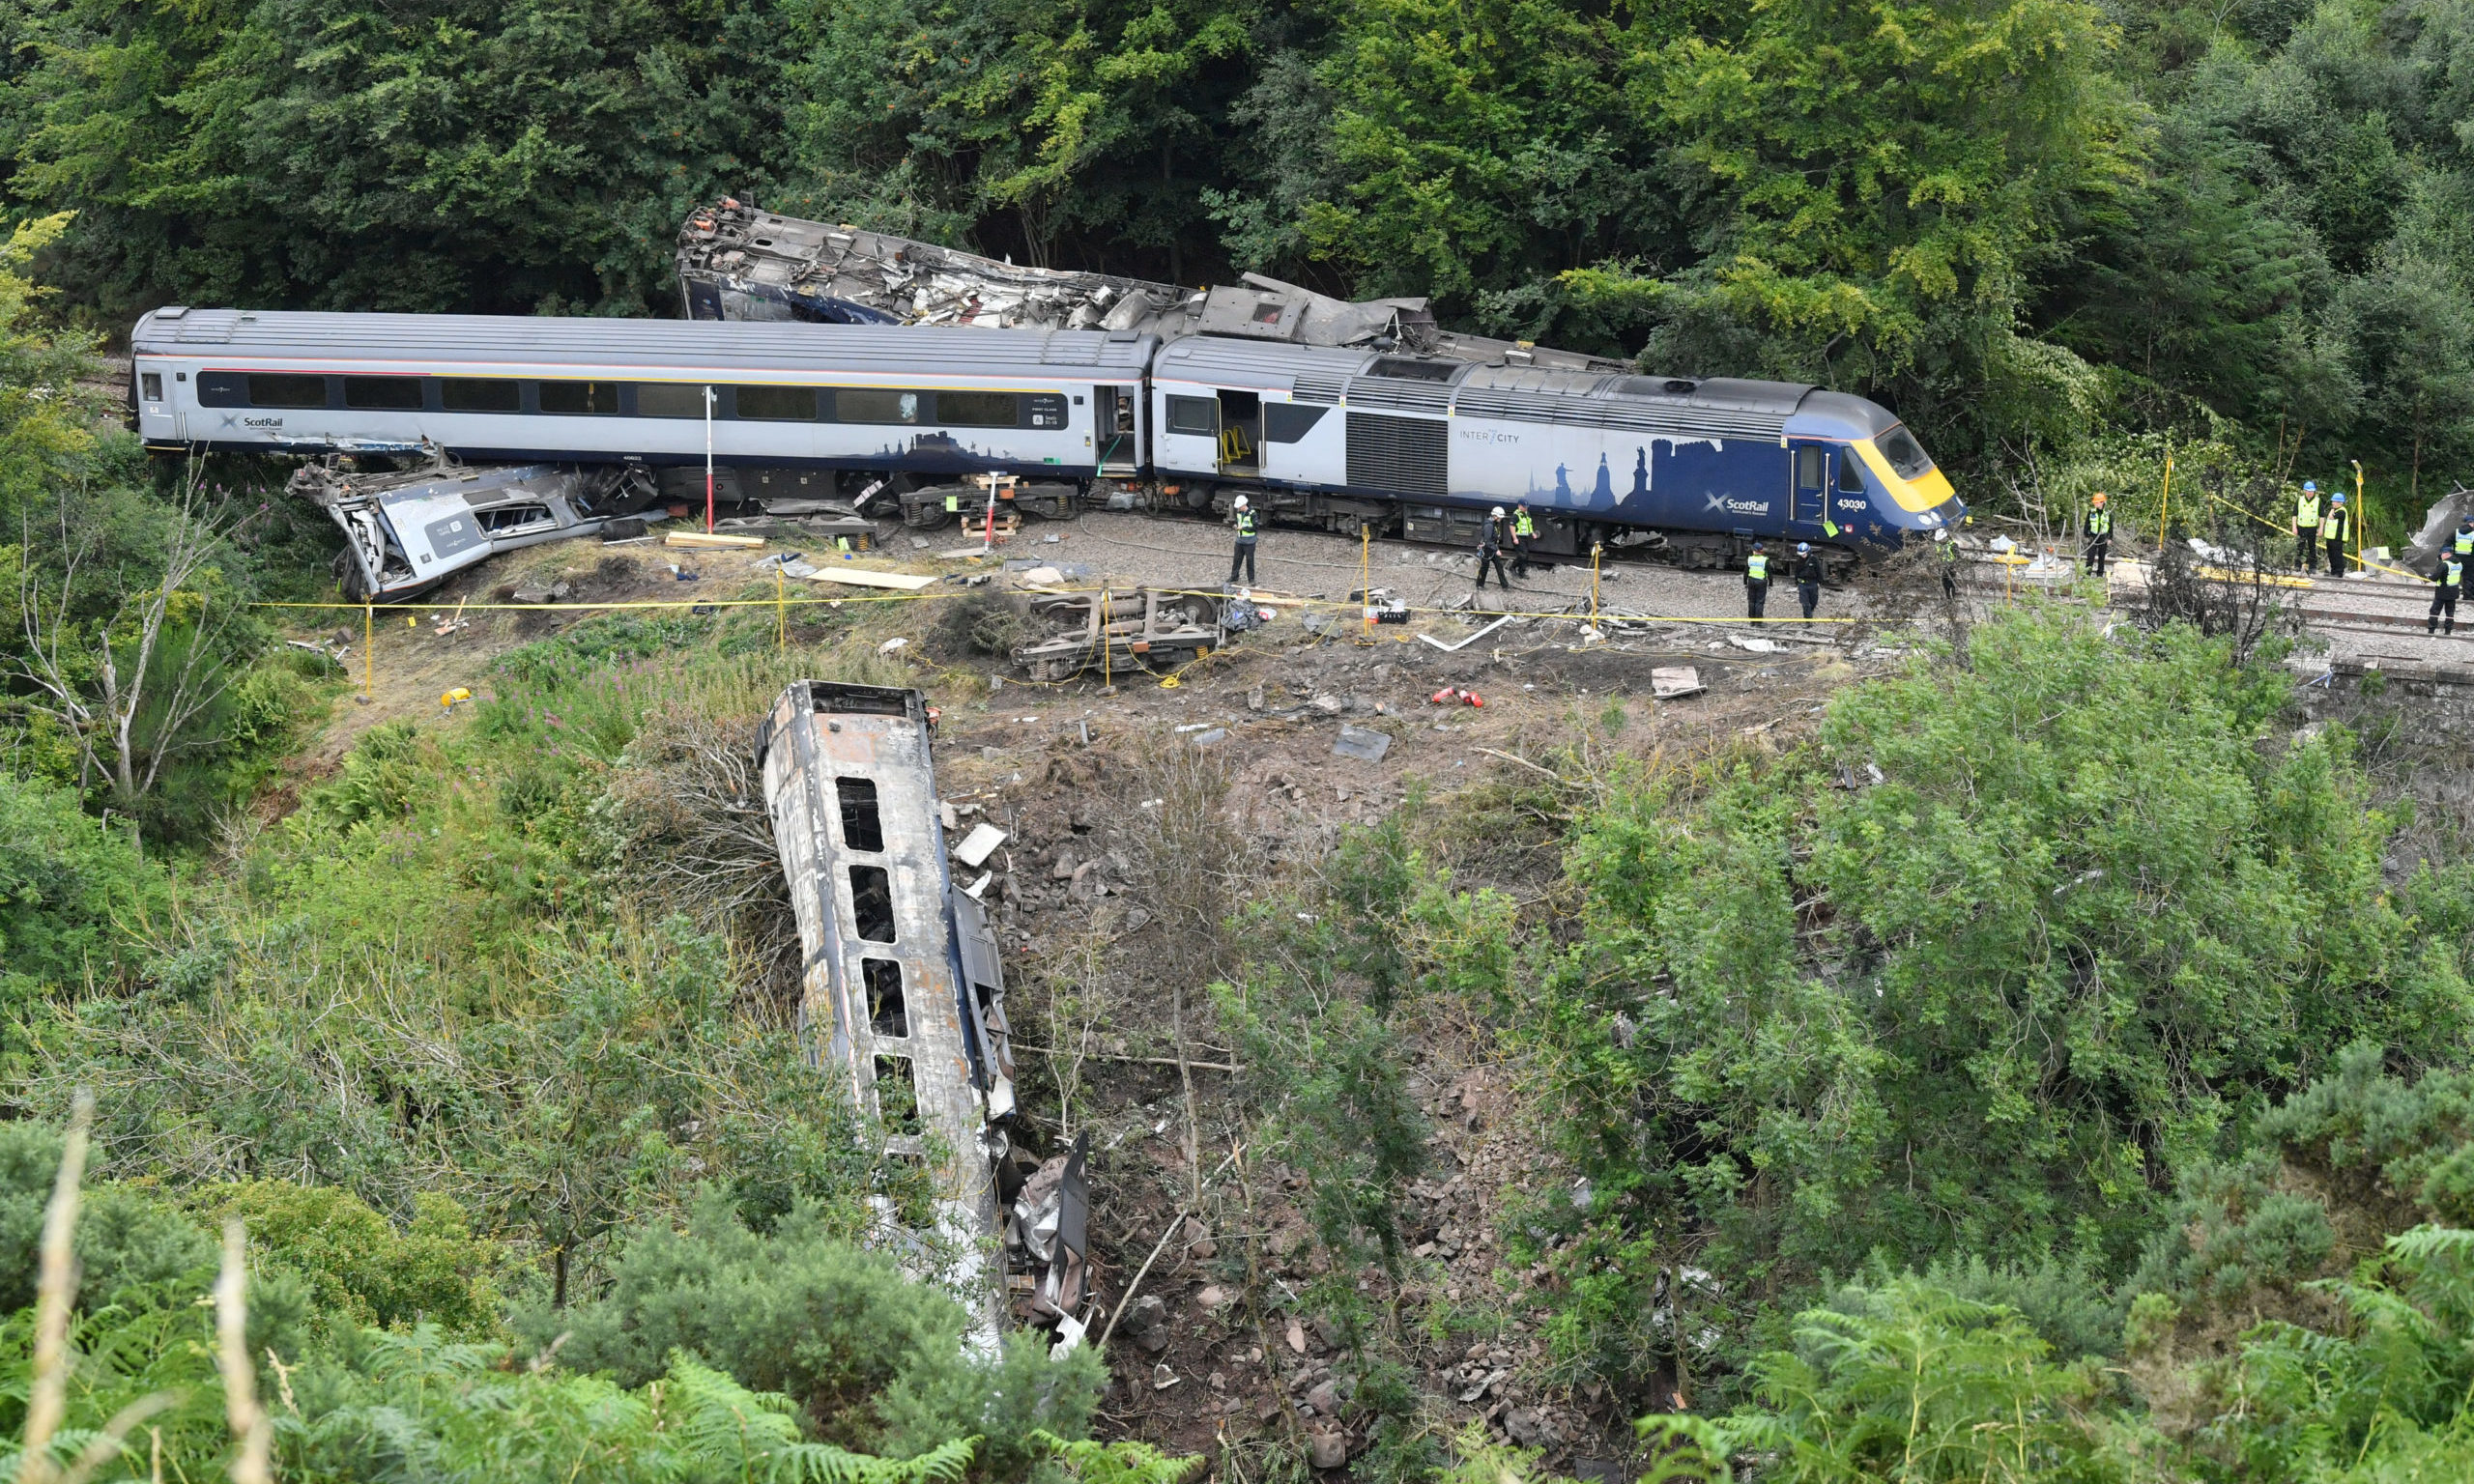 The scene near Stonehaven, Aberdeenshire, following the derailment of the ScotRail train which cost the lives of three people.